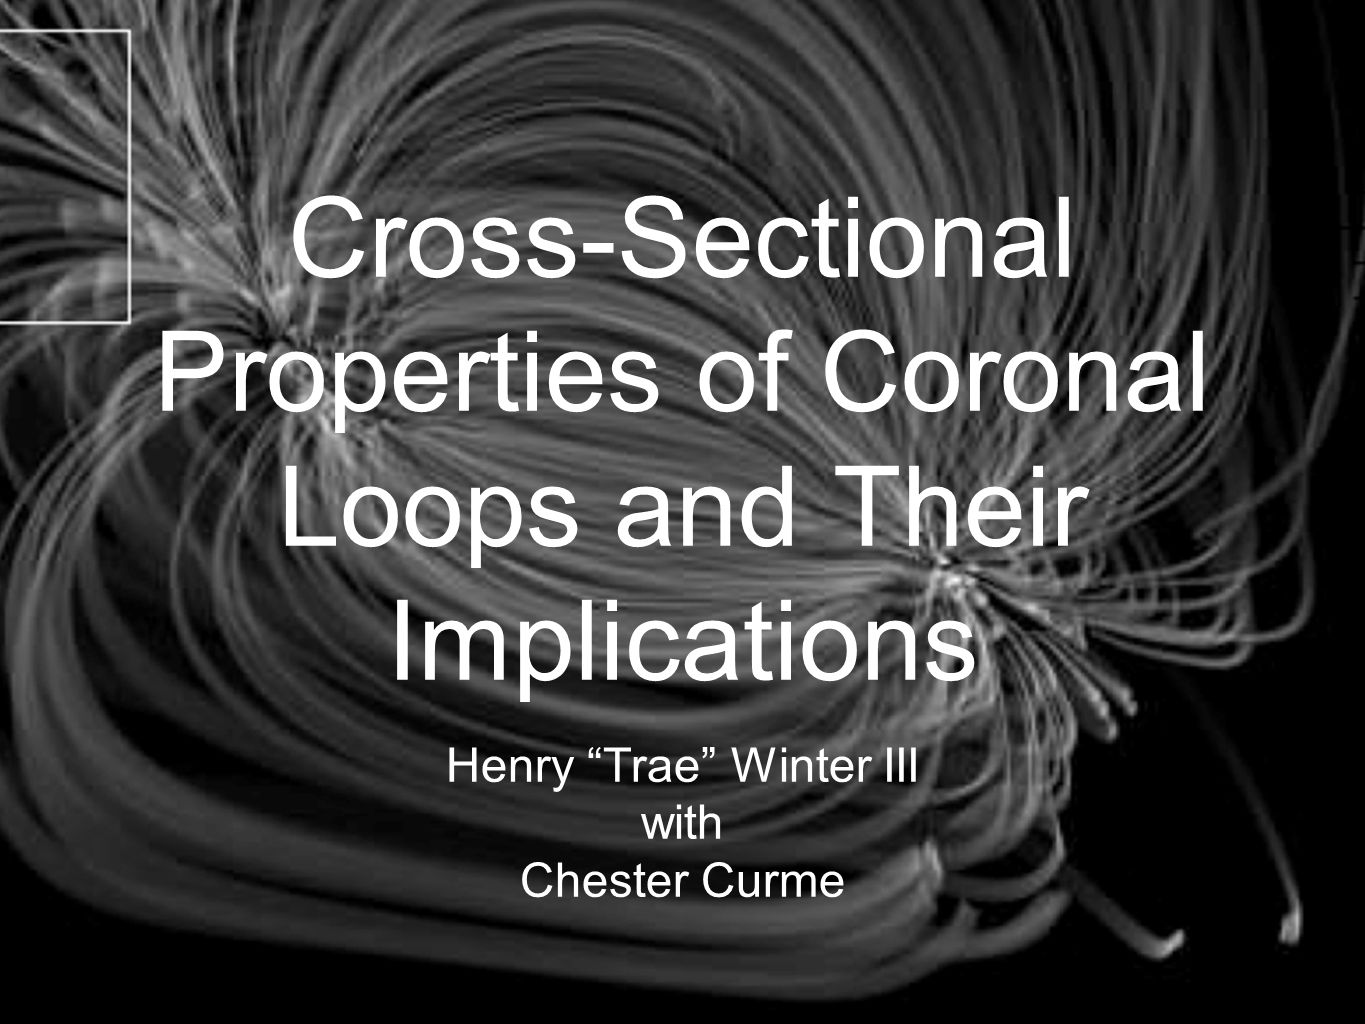 Cross-Sectional Properties of Coronal Loops and Their Implications Henry Trae Winter III with Chester Curme